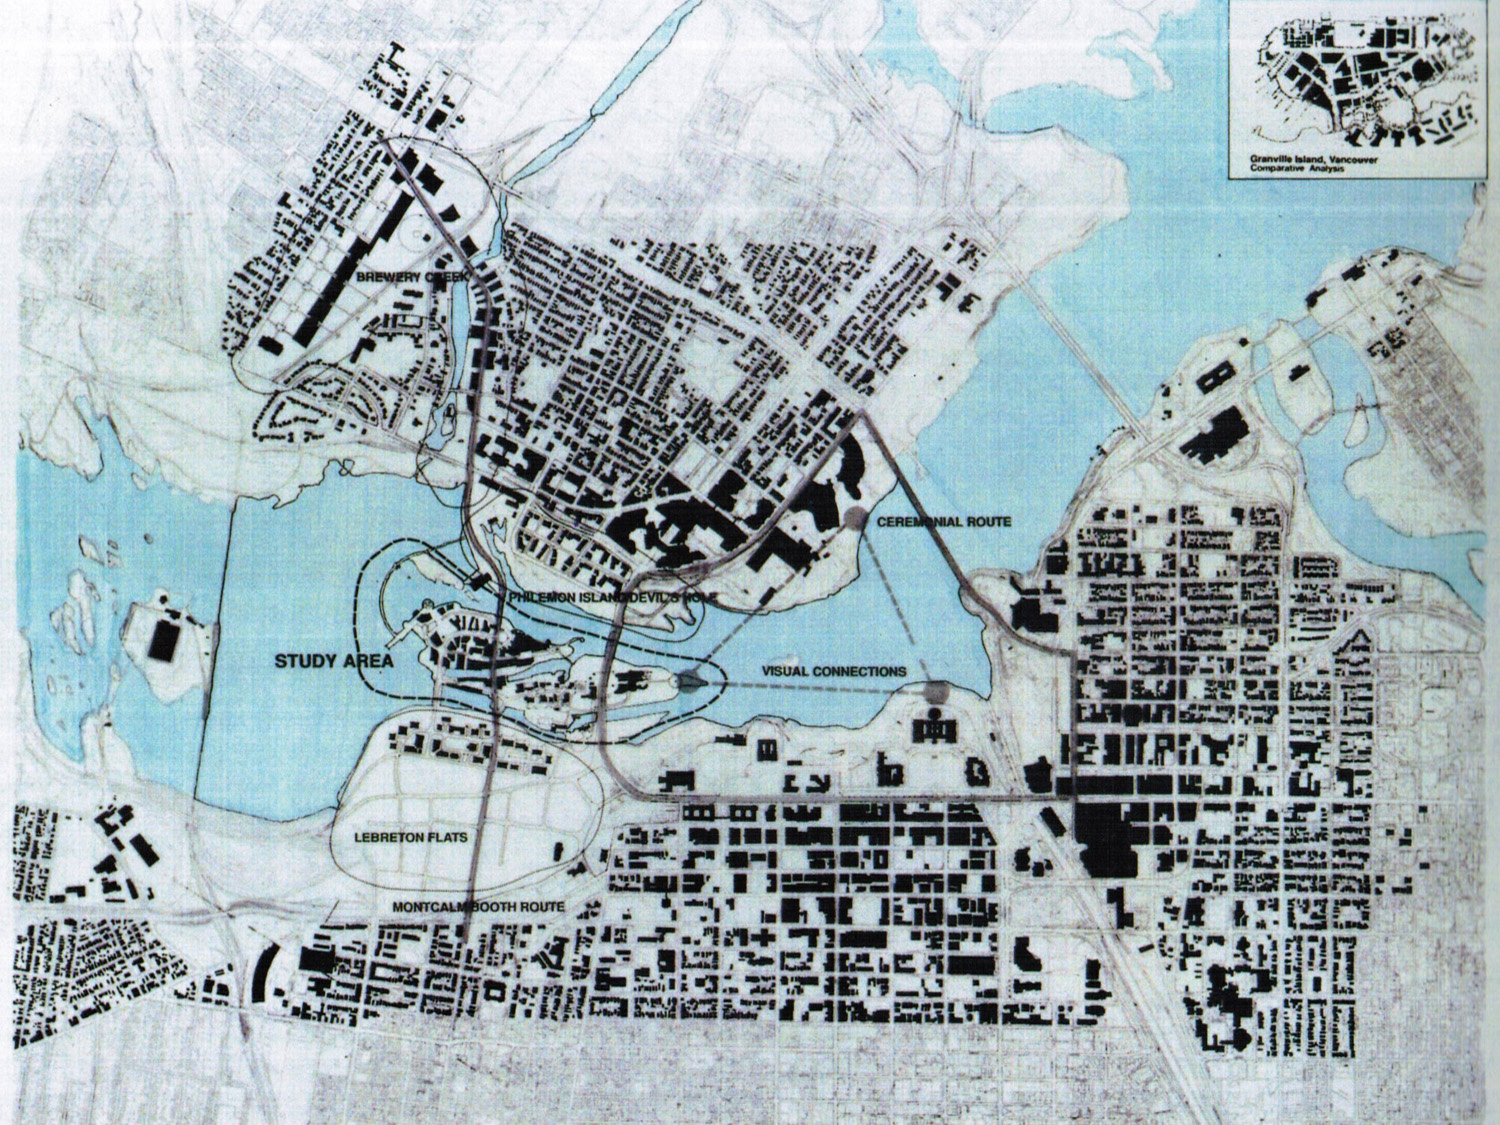 Victoria-Chaudiere Islands Heritage District Master Plan